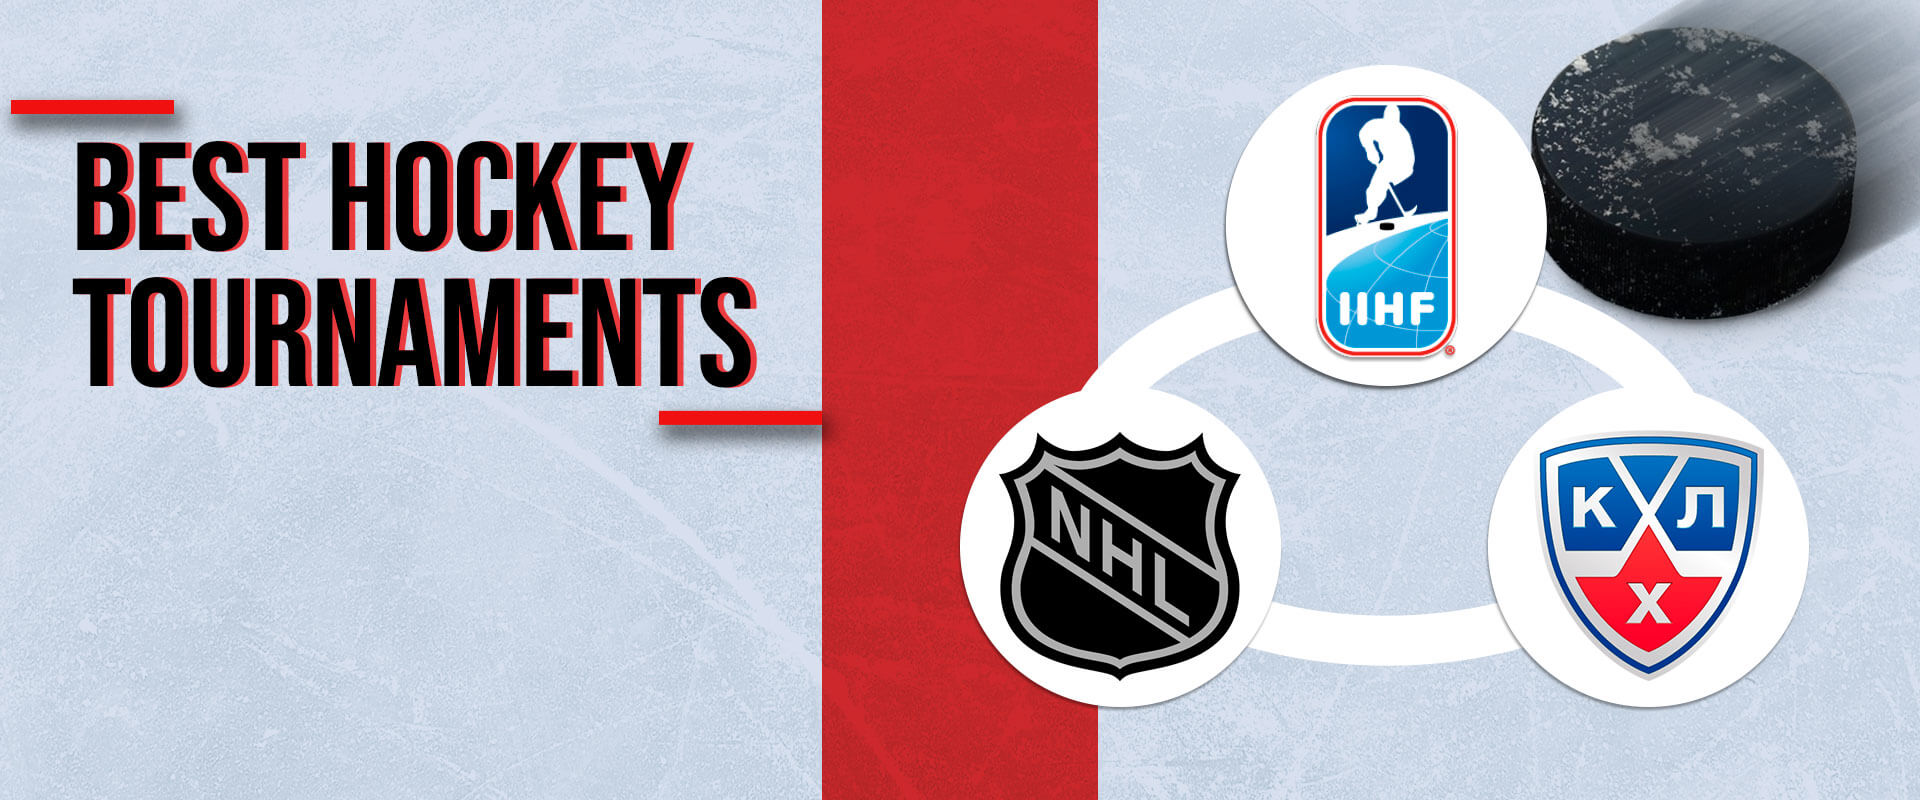 The most prominent hockey tournaments.